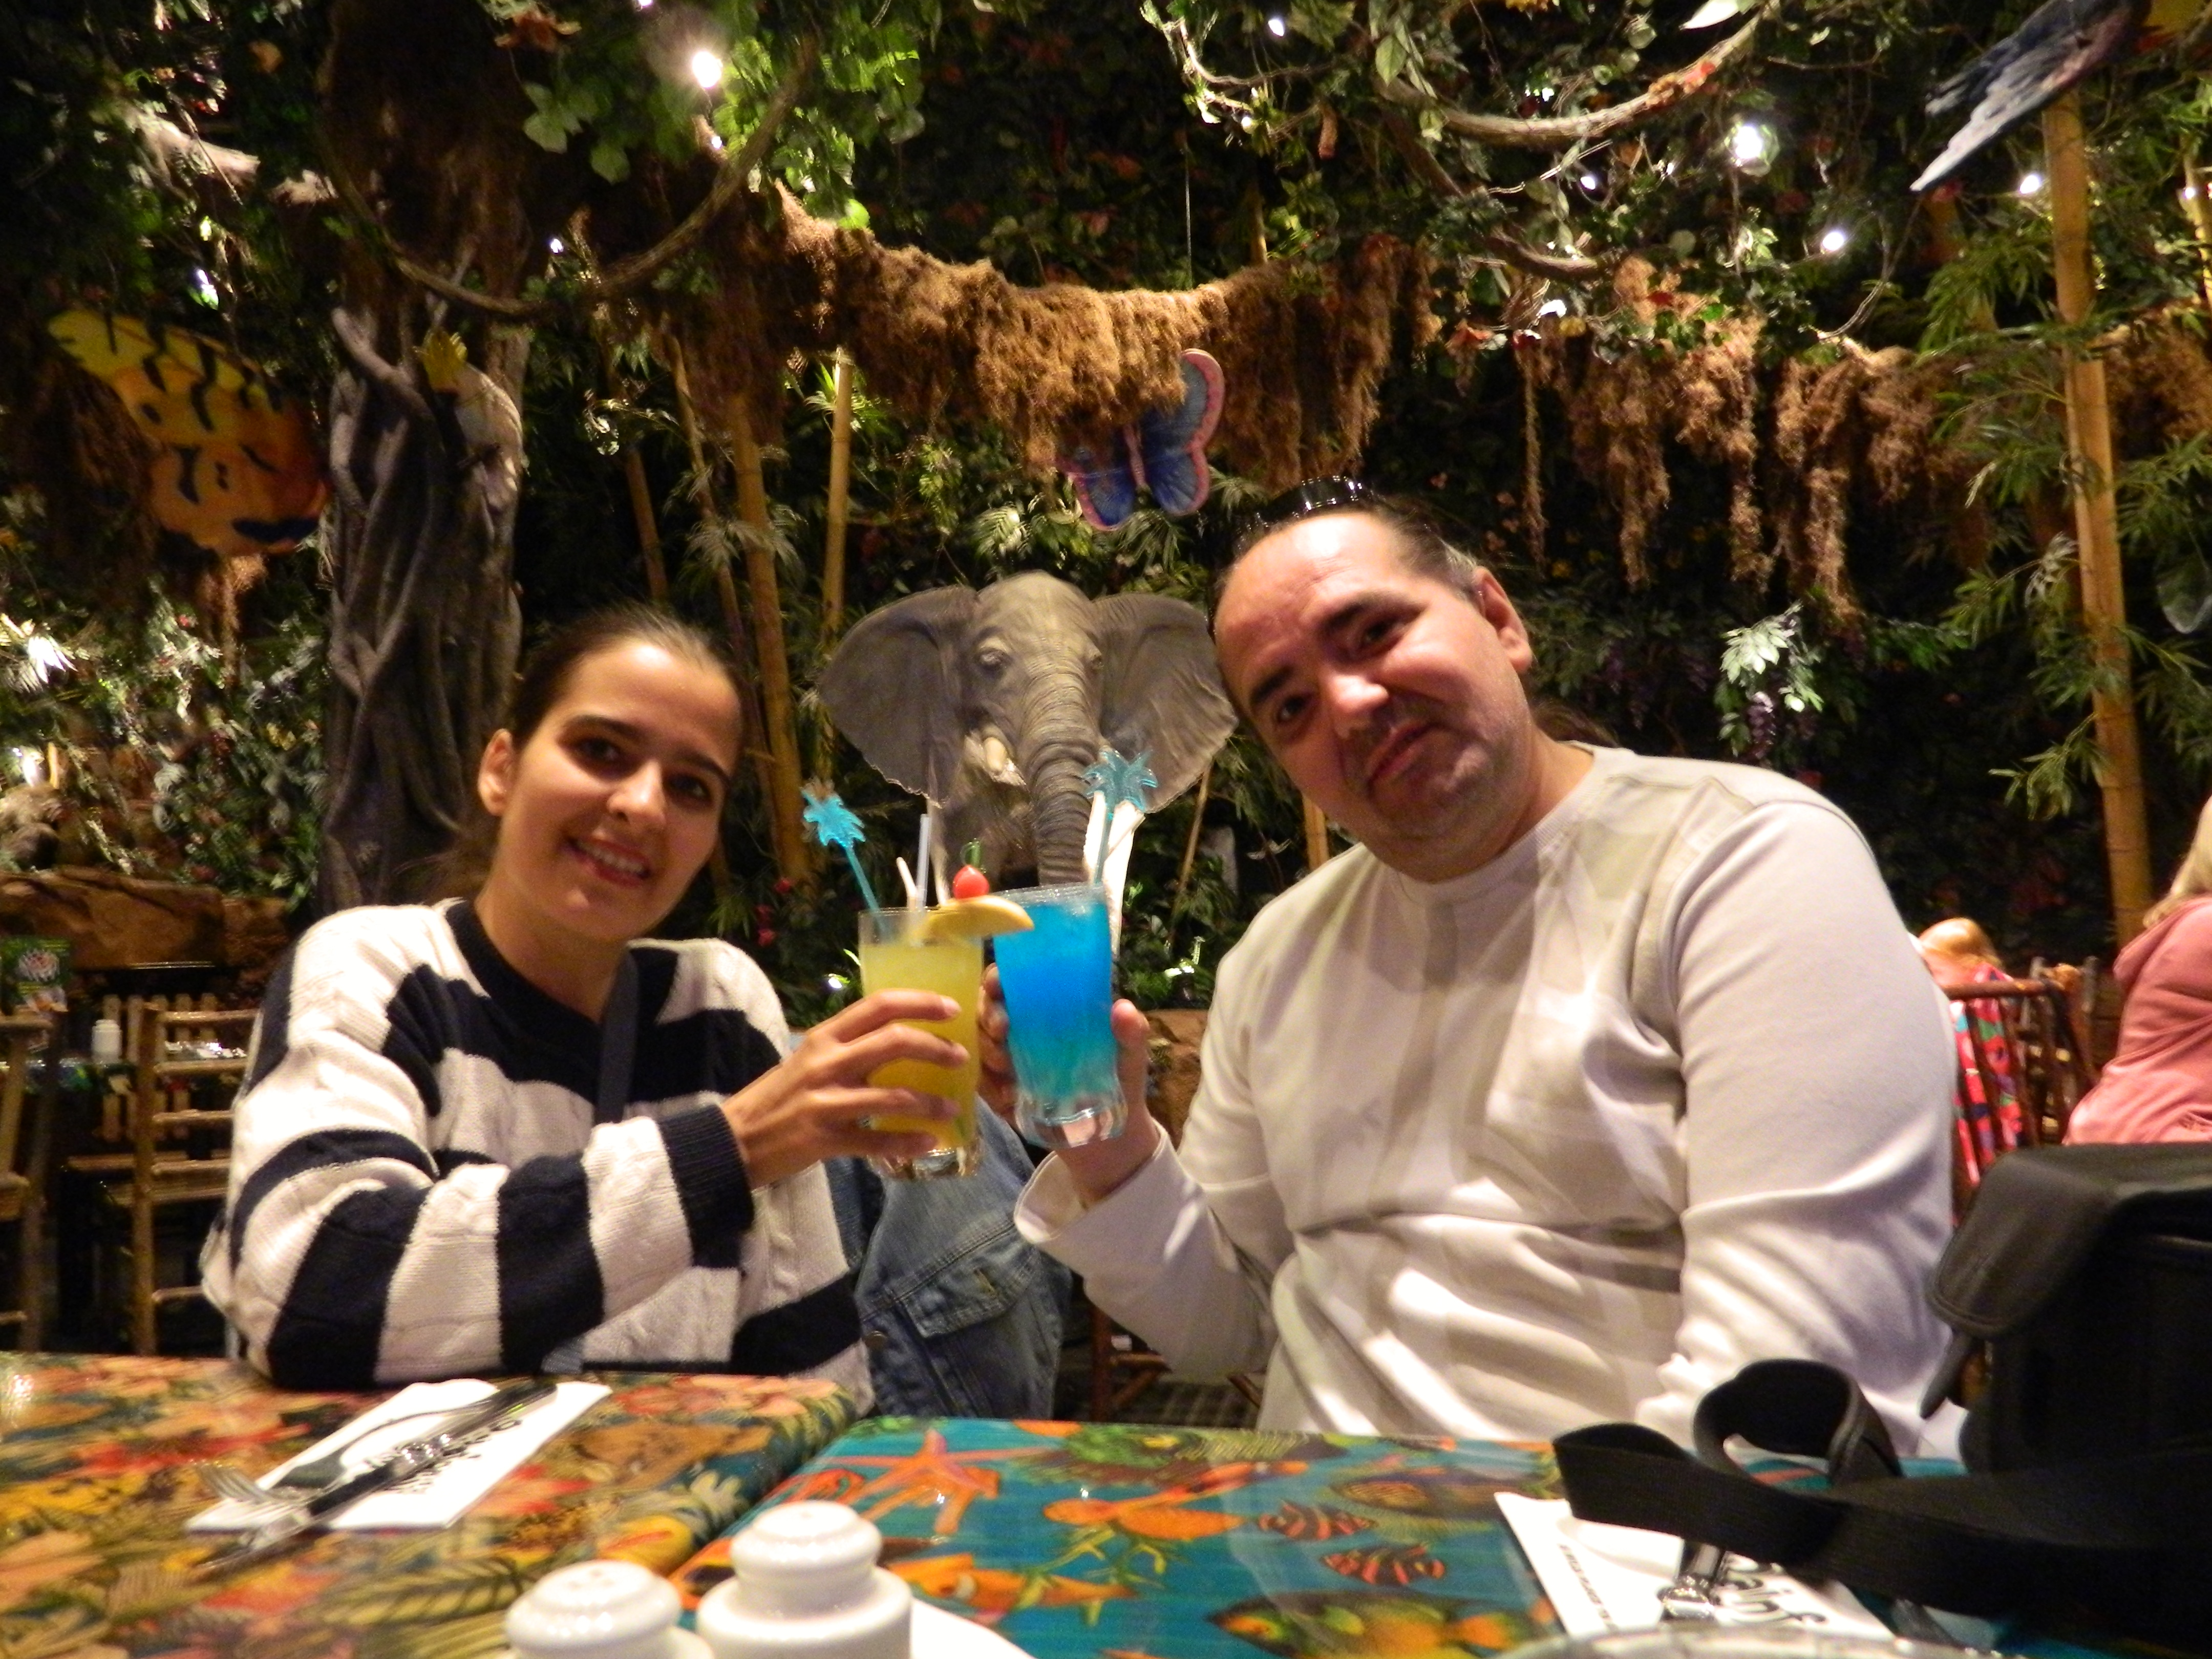 Rainforest Cafe in Disney Village